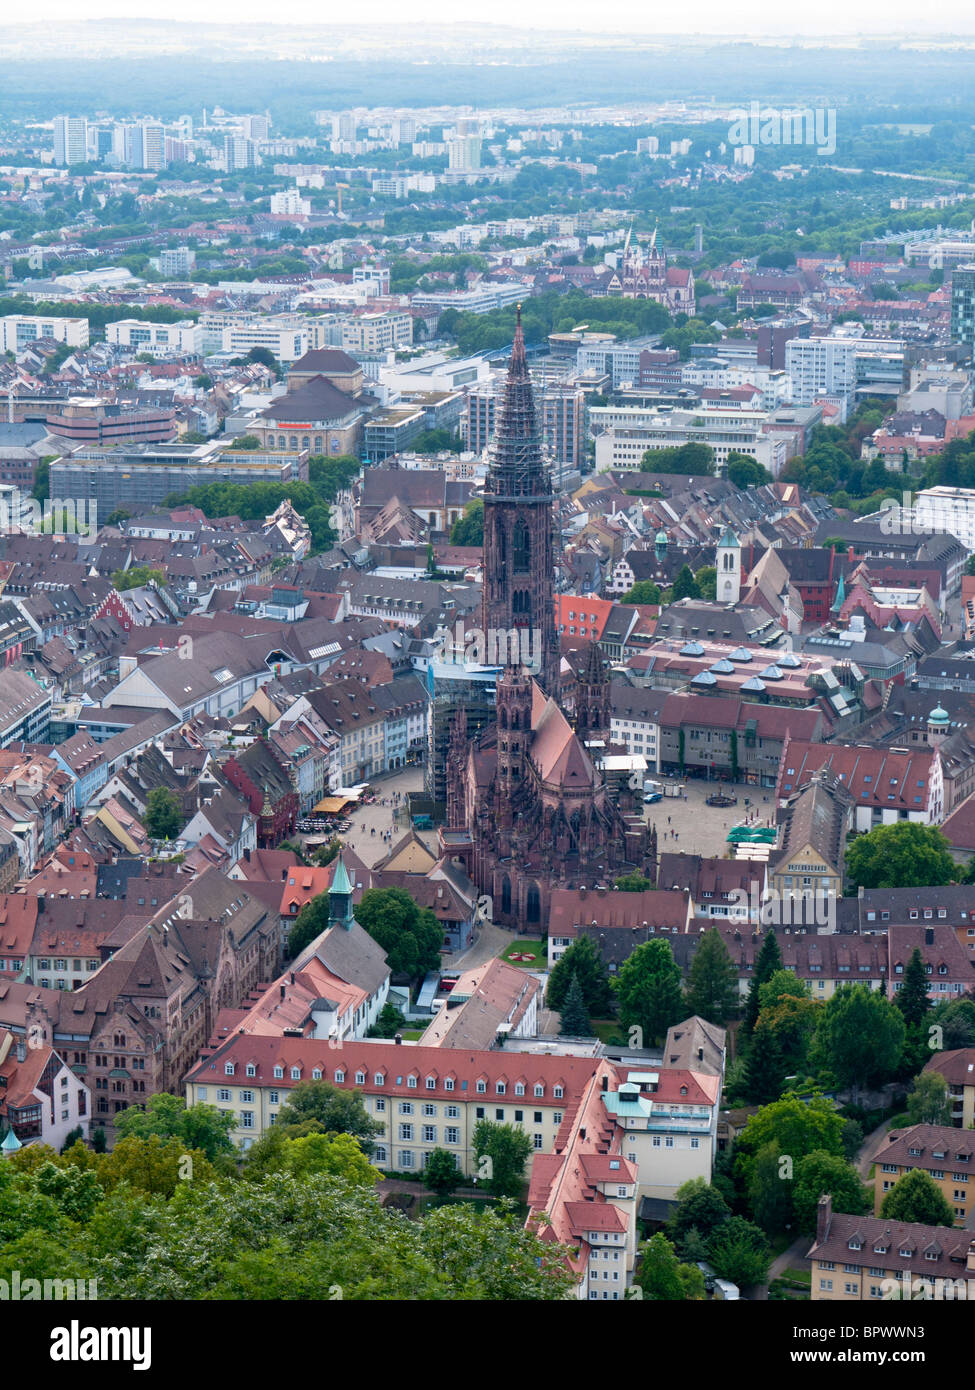 City view of Freiburg im Breisgau with the Freiburg Munster cathedral in Southern Germany - Stock Image